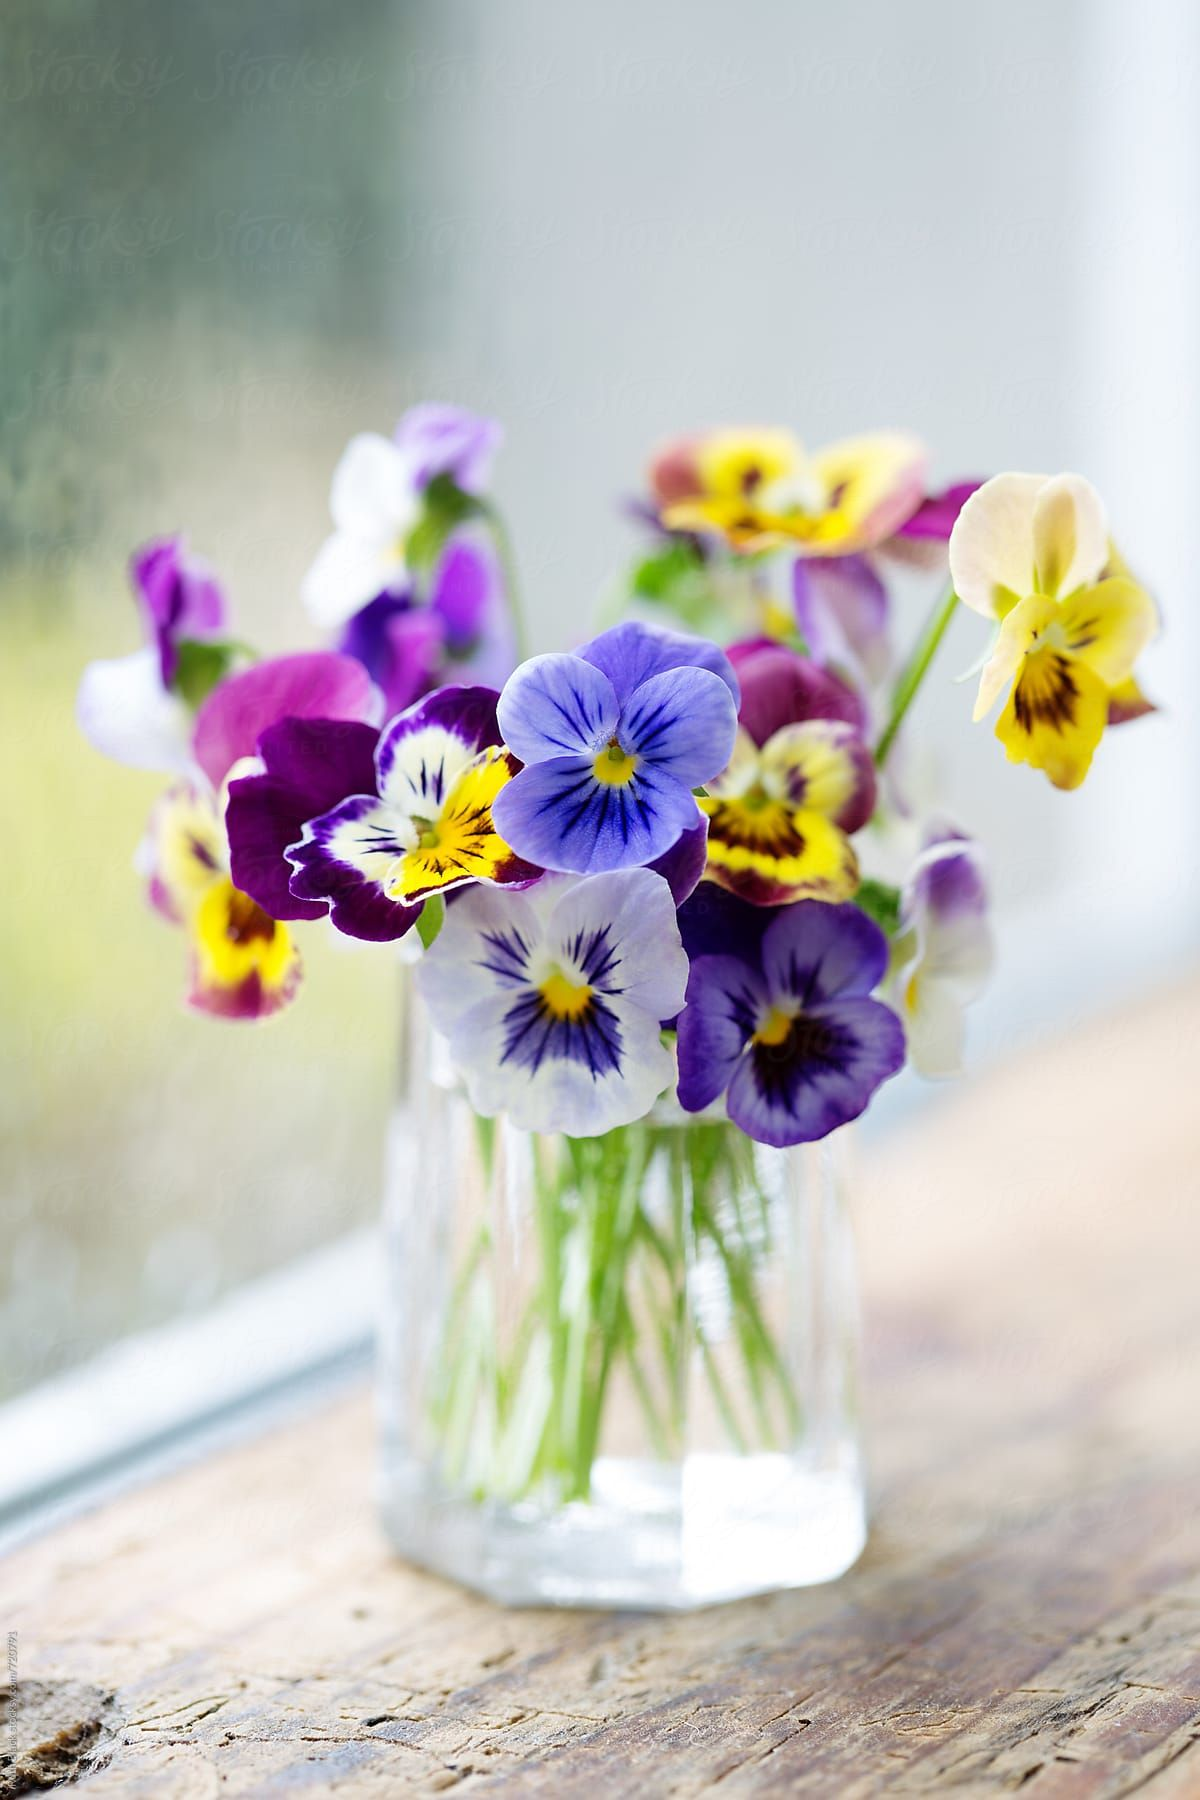 Vase Of Pansies On A Window Sill By Ruth Black For Stocksy United Pansies Flowers Beautiful Flowers Pretty Flowers